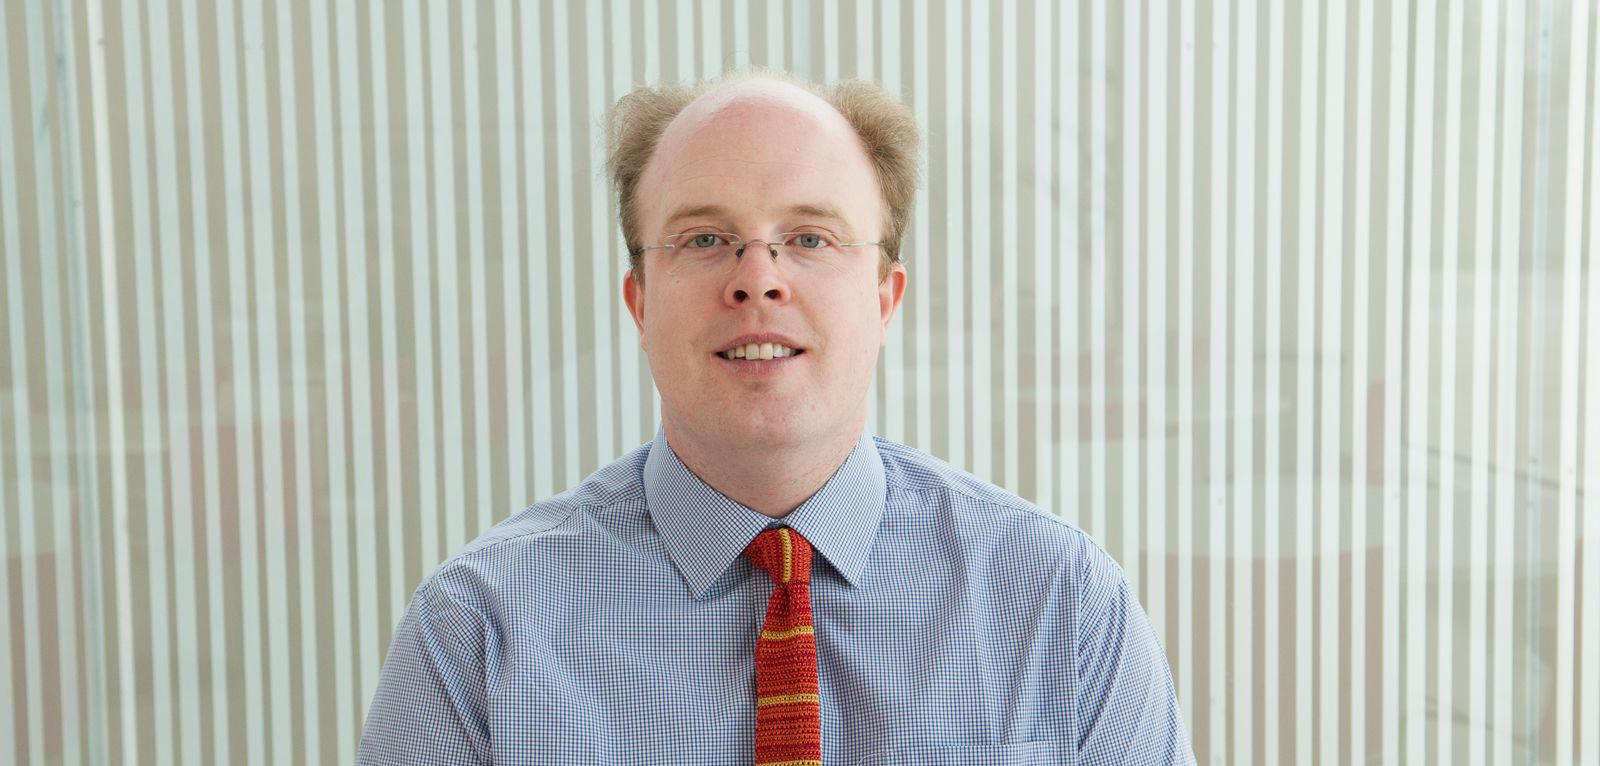 Dr Sherlock joins the Kennedy Institute to lead a new research group examining the immunobiology of spondyloarthropathy